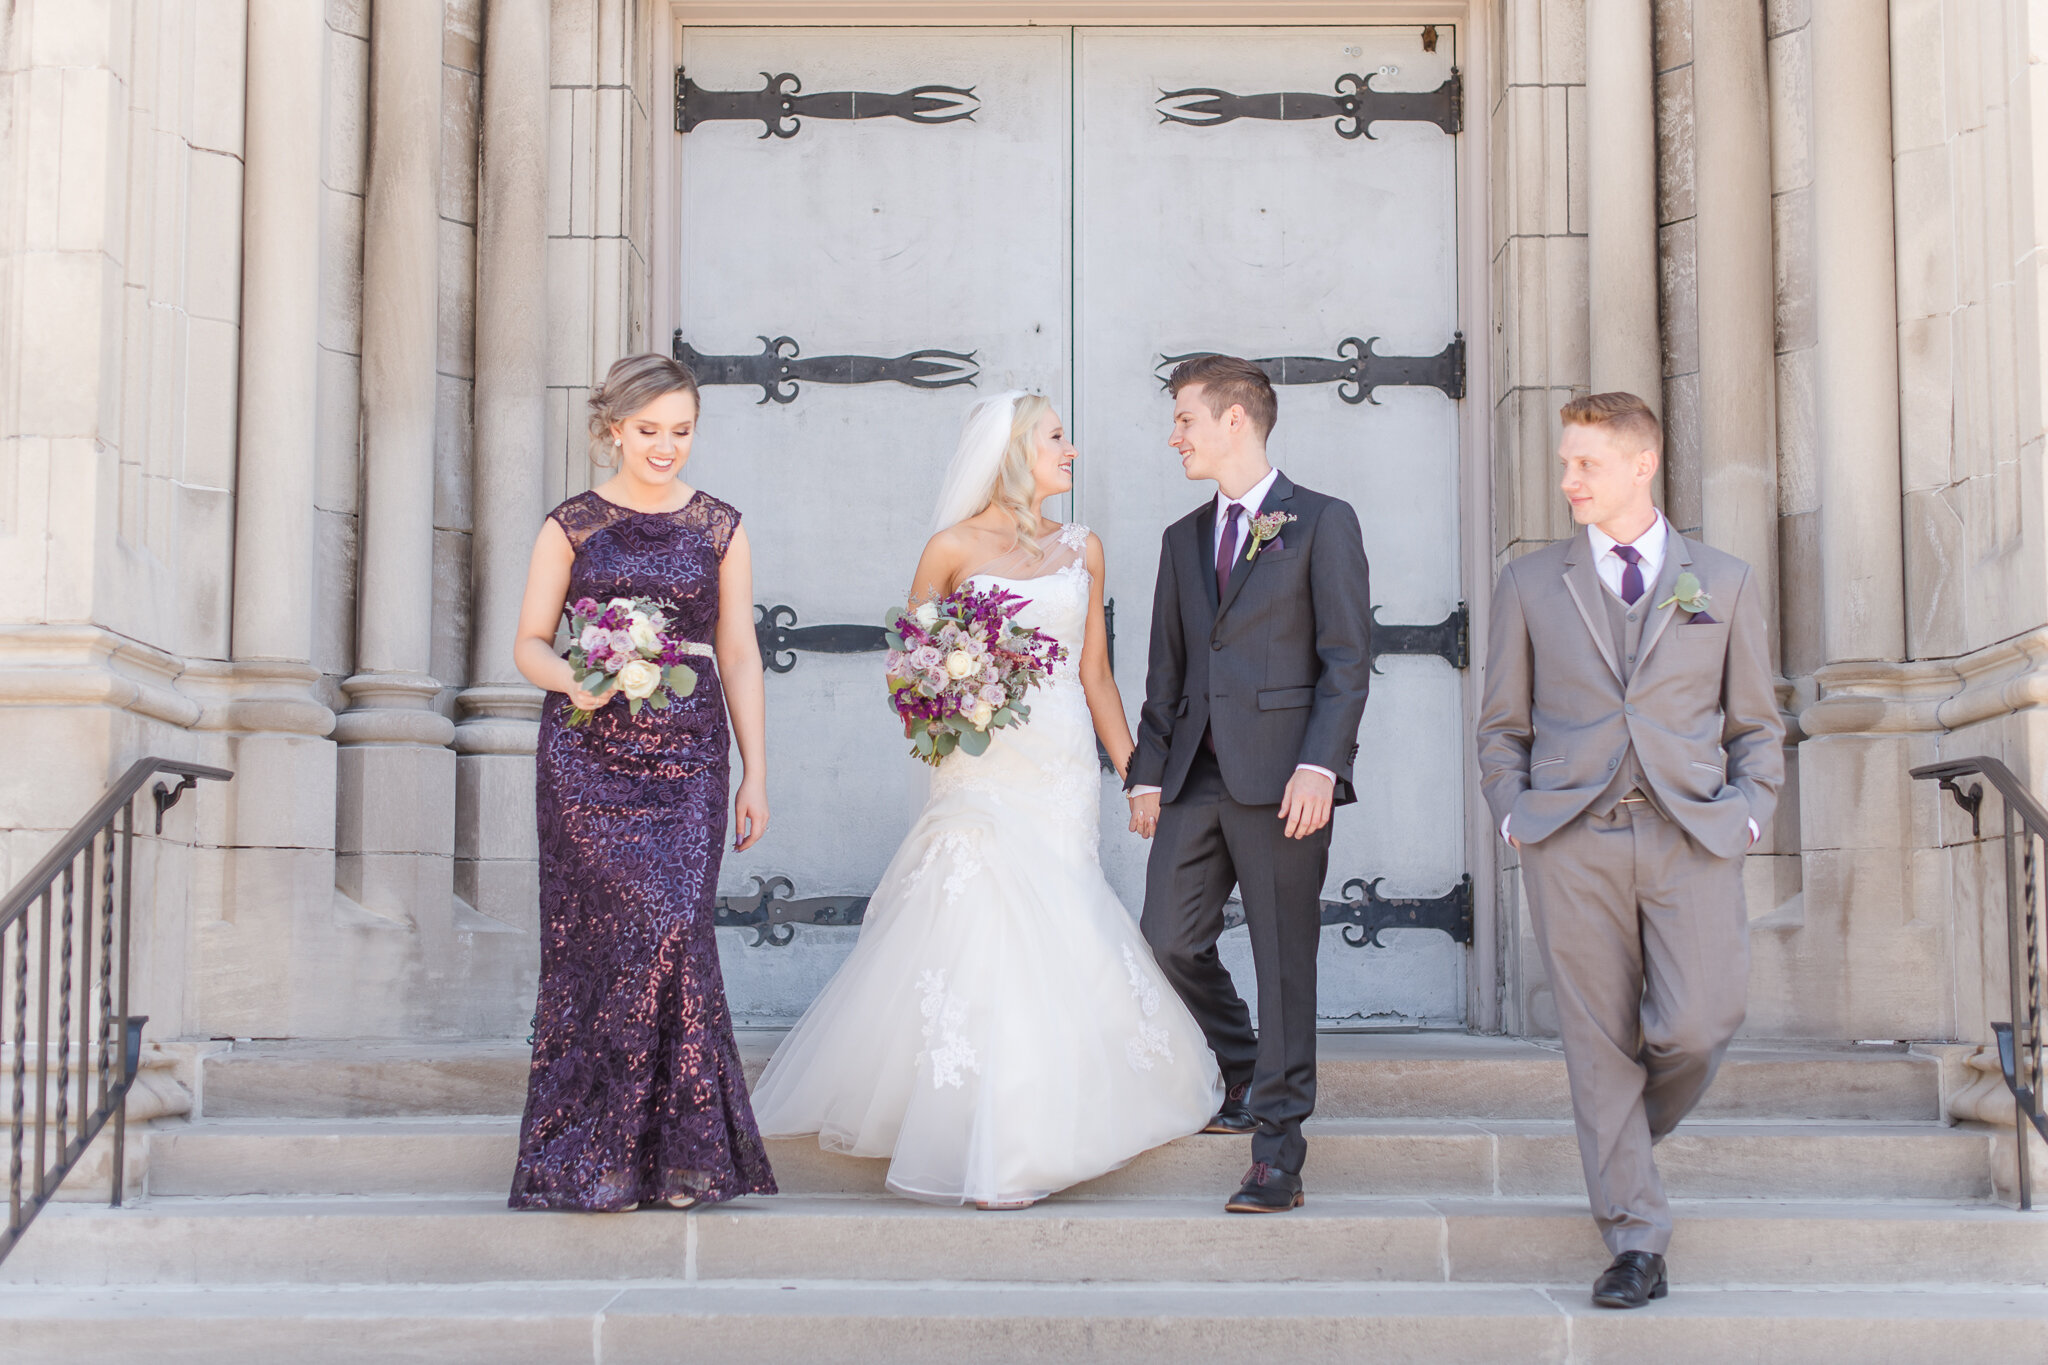 Downtown Indianapolis Wedding at Cyrus Place6661.jpg